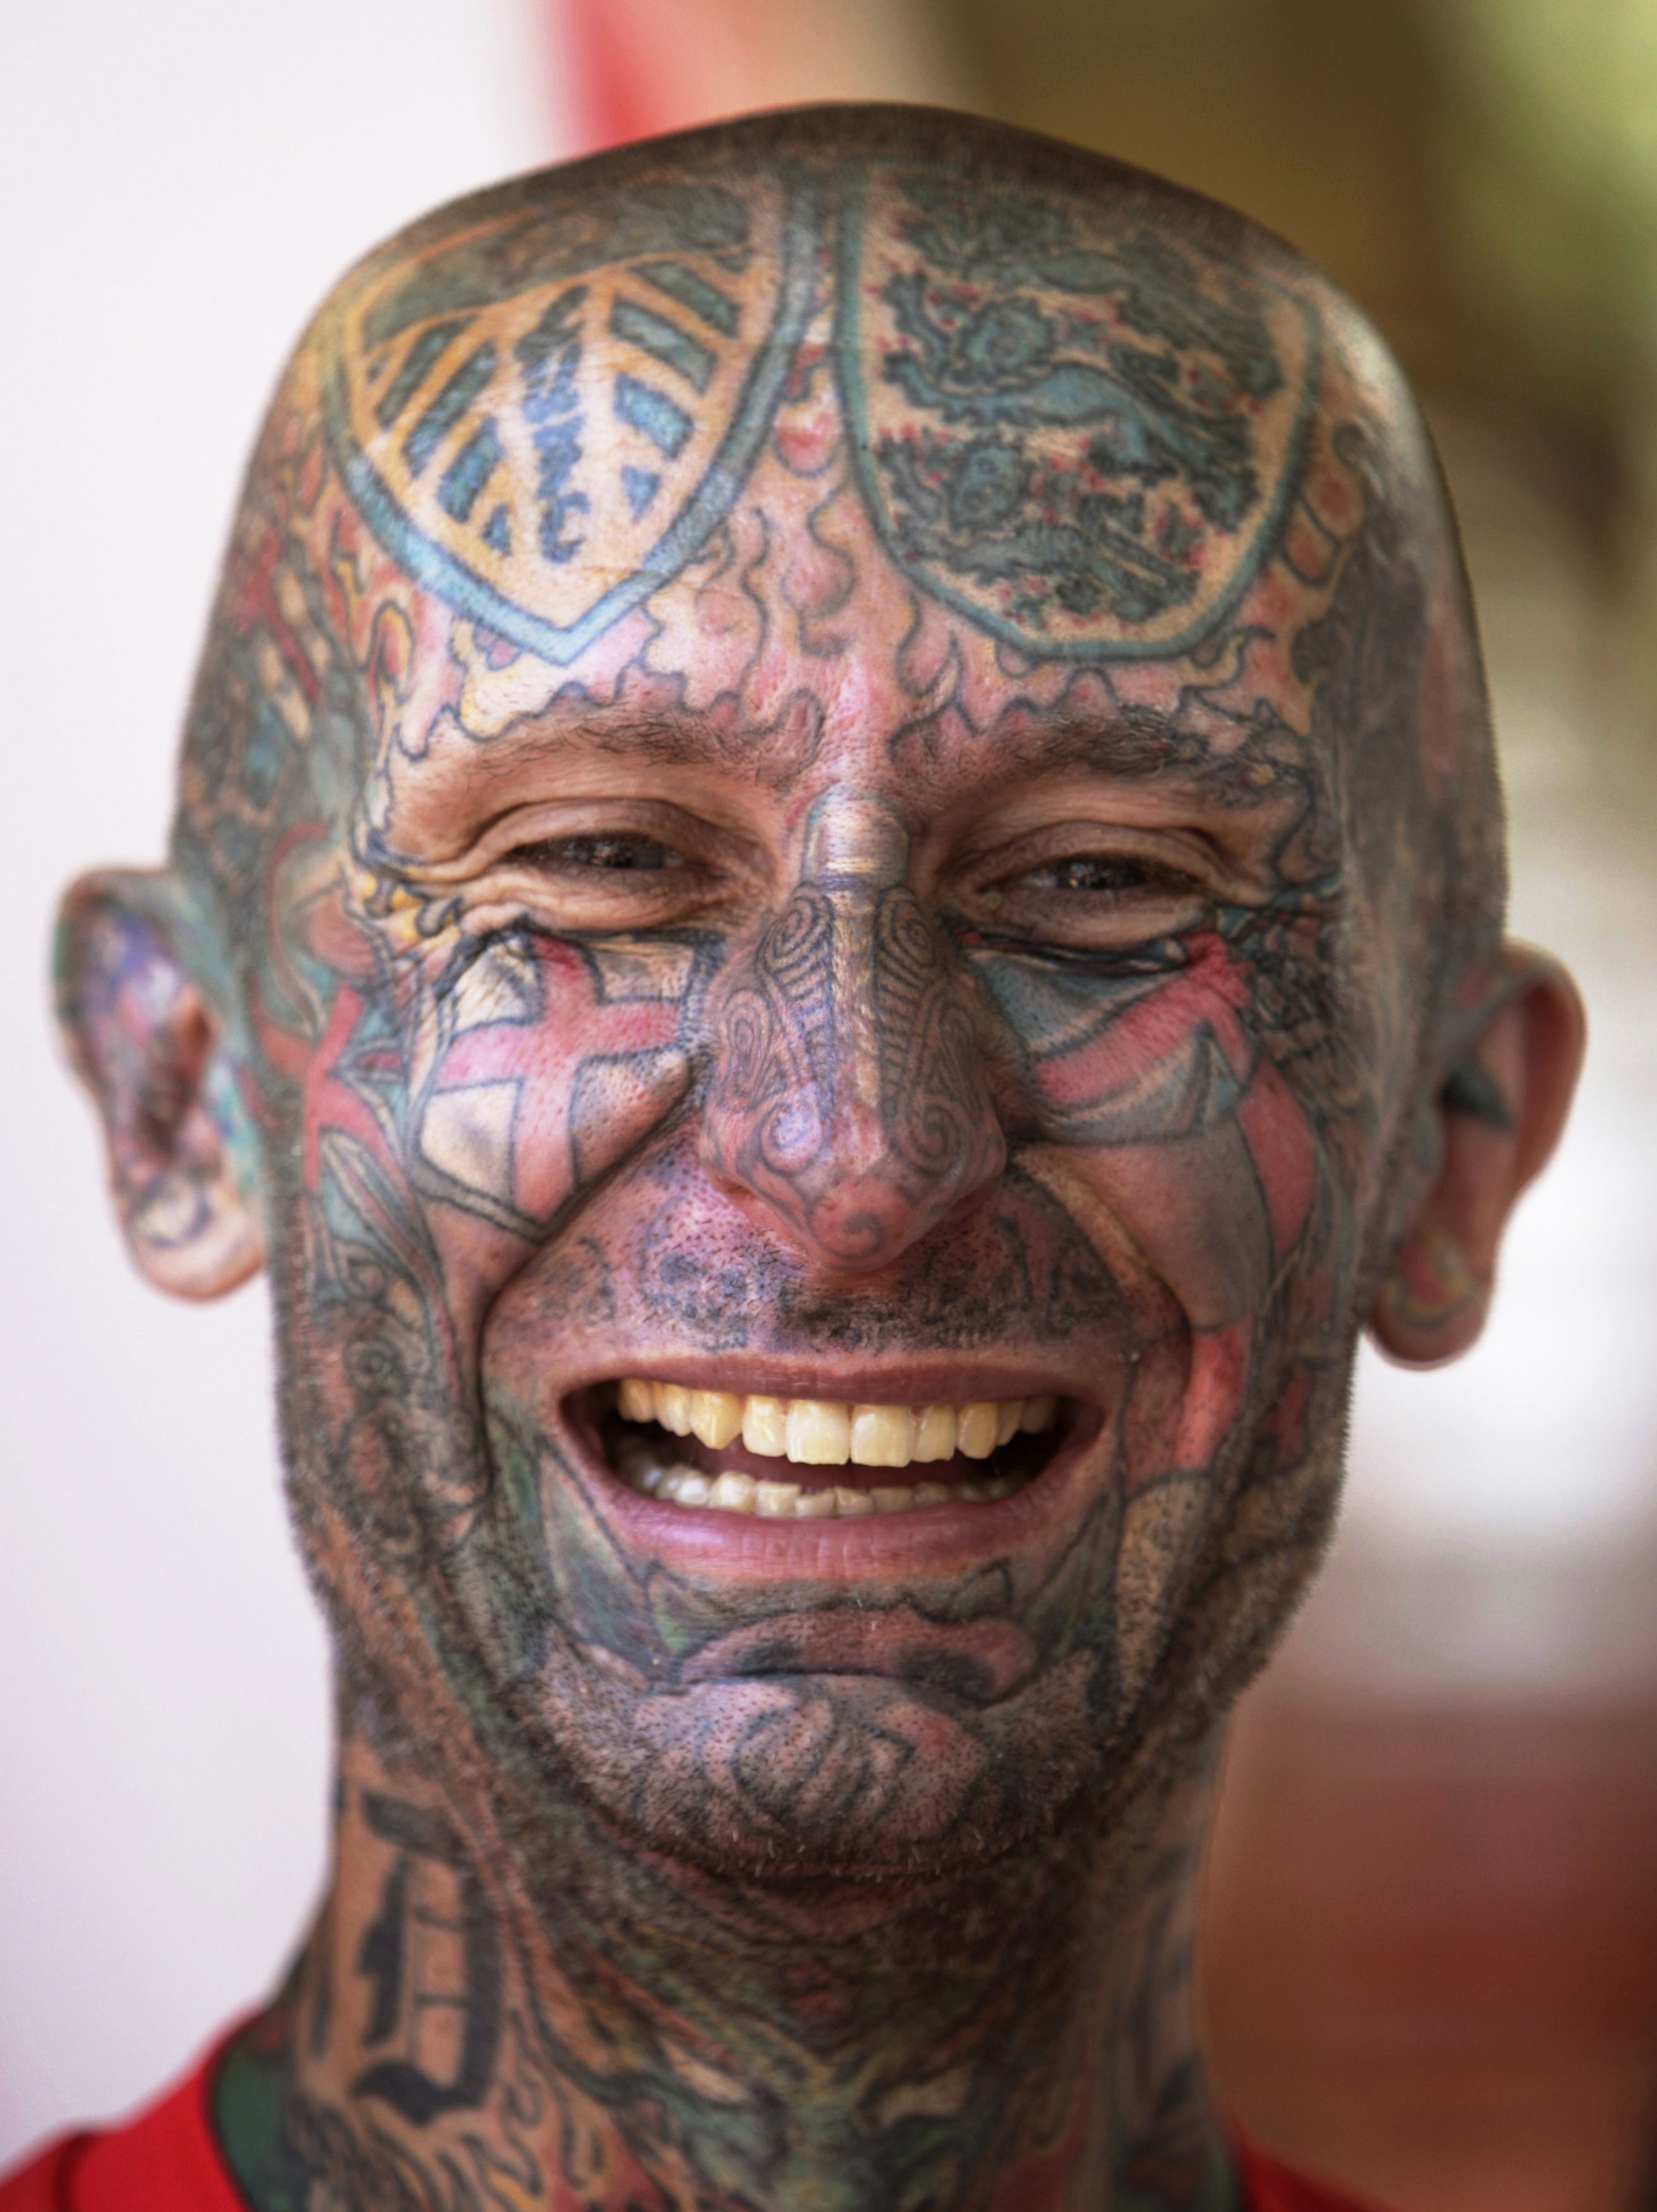 British soccer fan with a tattooed face smiles prior to England's first match of the Euro 2012 soccer championships against France on June 11, 2012 in Donetsk, Ukraine. on Monday.